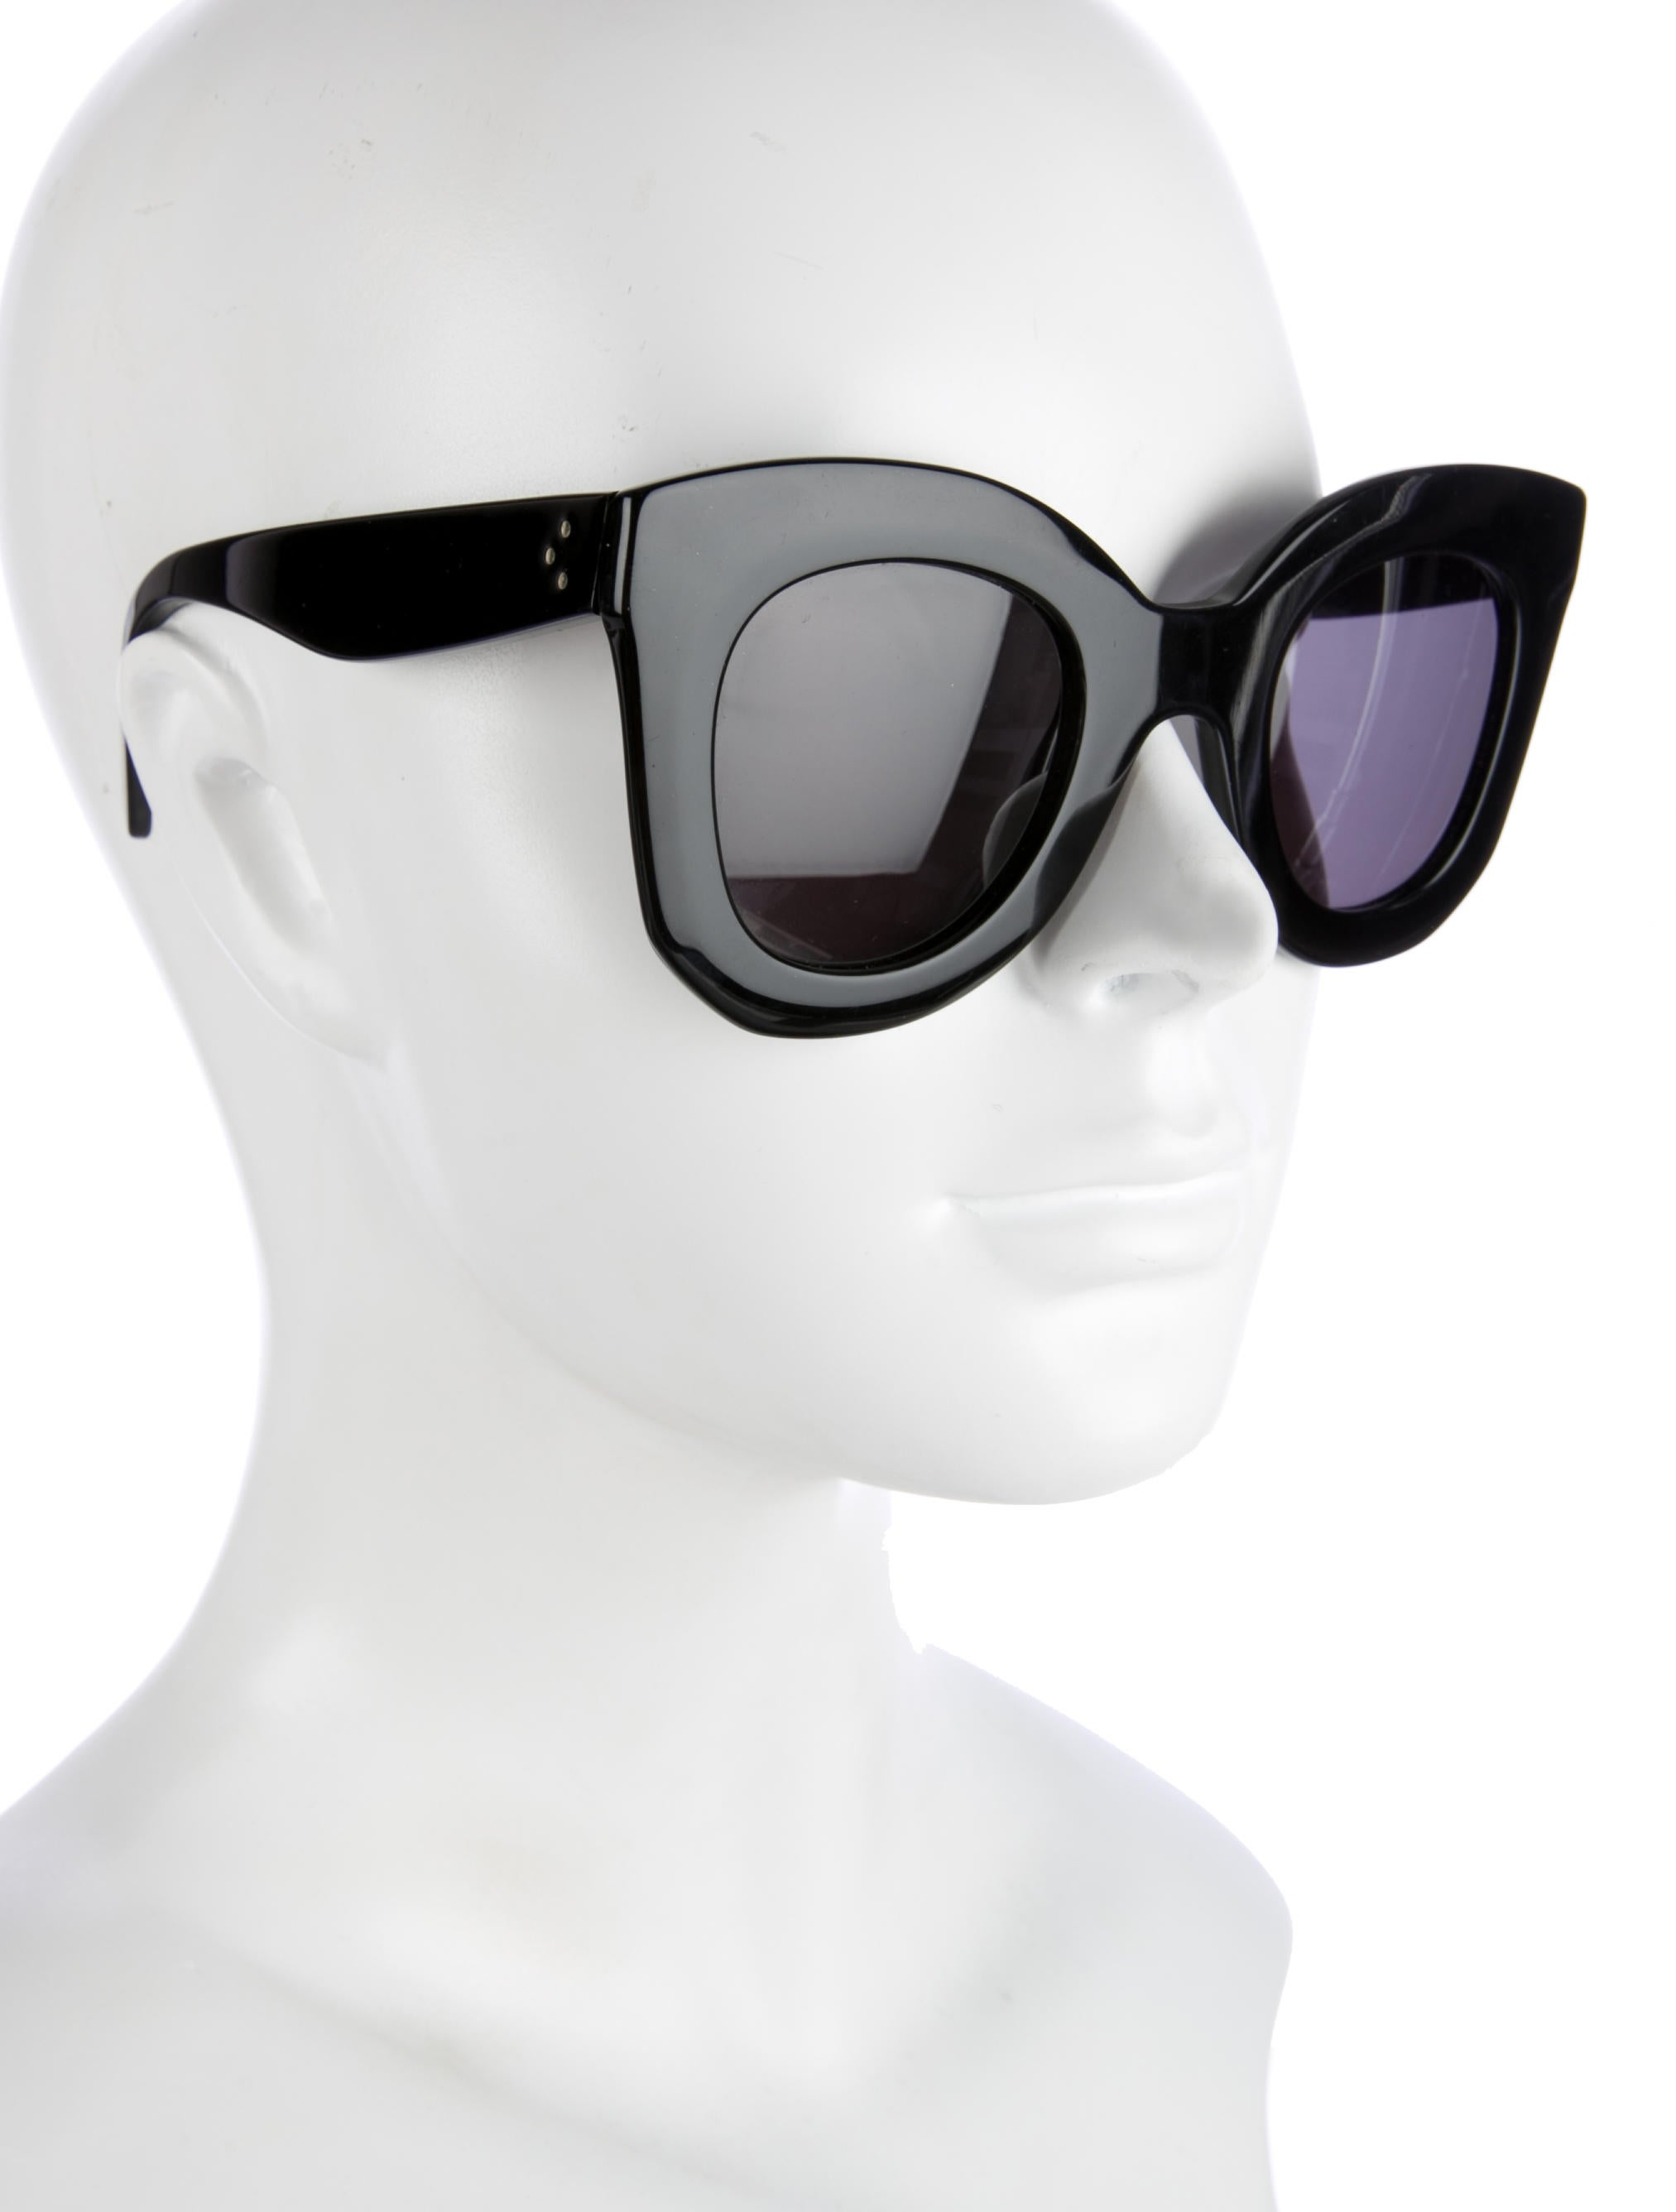 C233line Baby Marta Sunglasses Accessories CEL30067  : CEL300674enlarged from www.therealreal.com size 2025 x 2672 jpeg 121kB